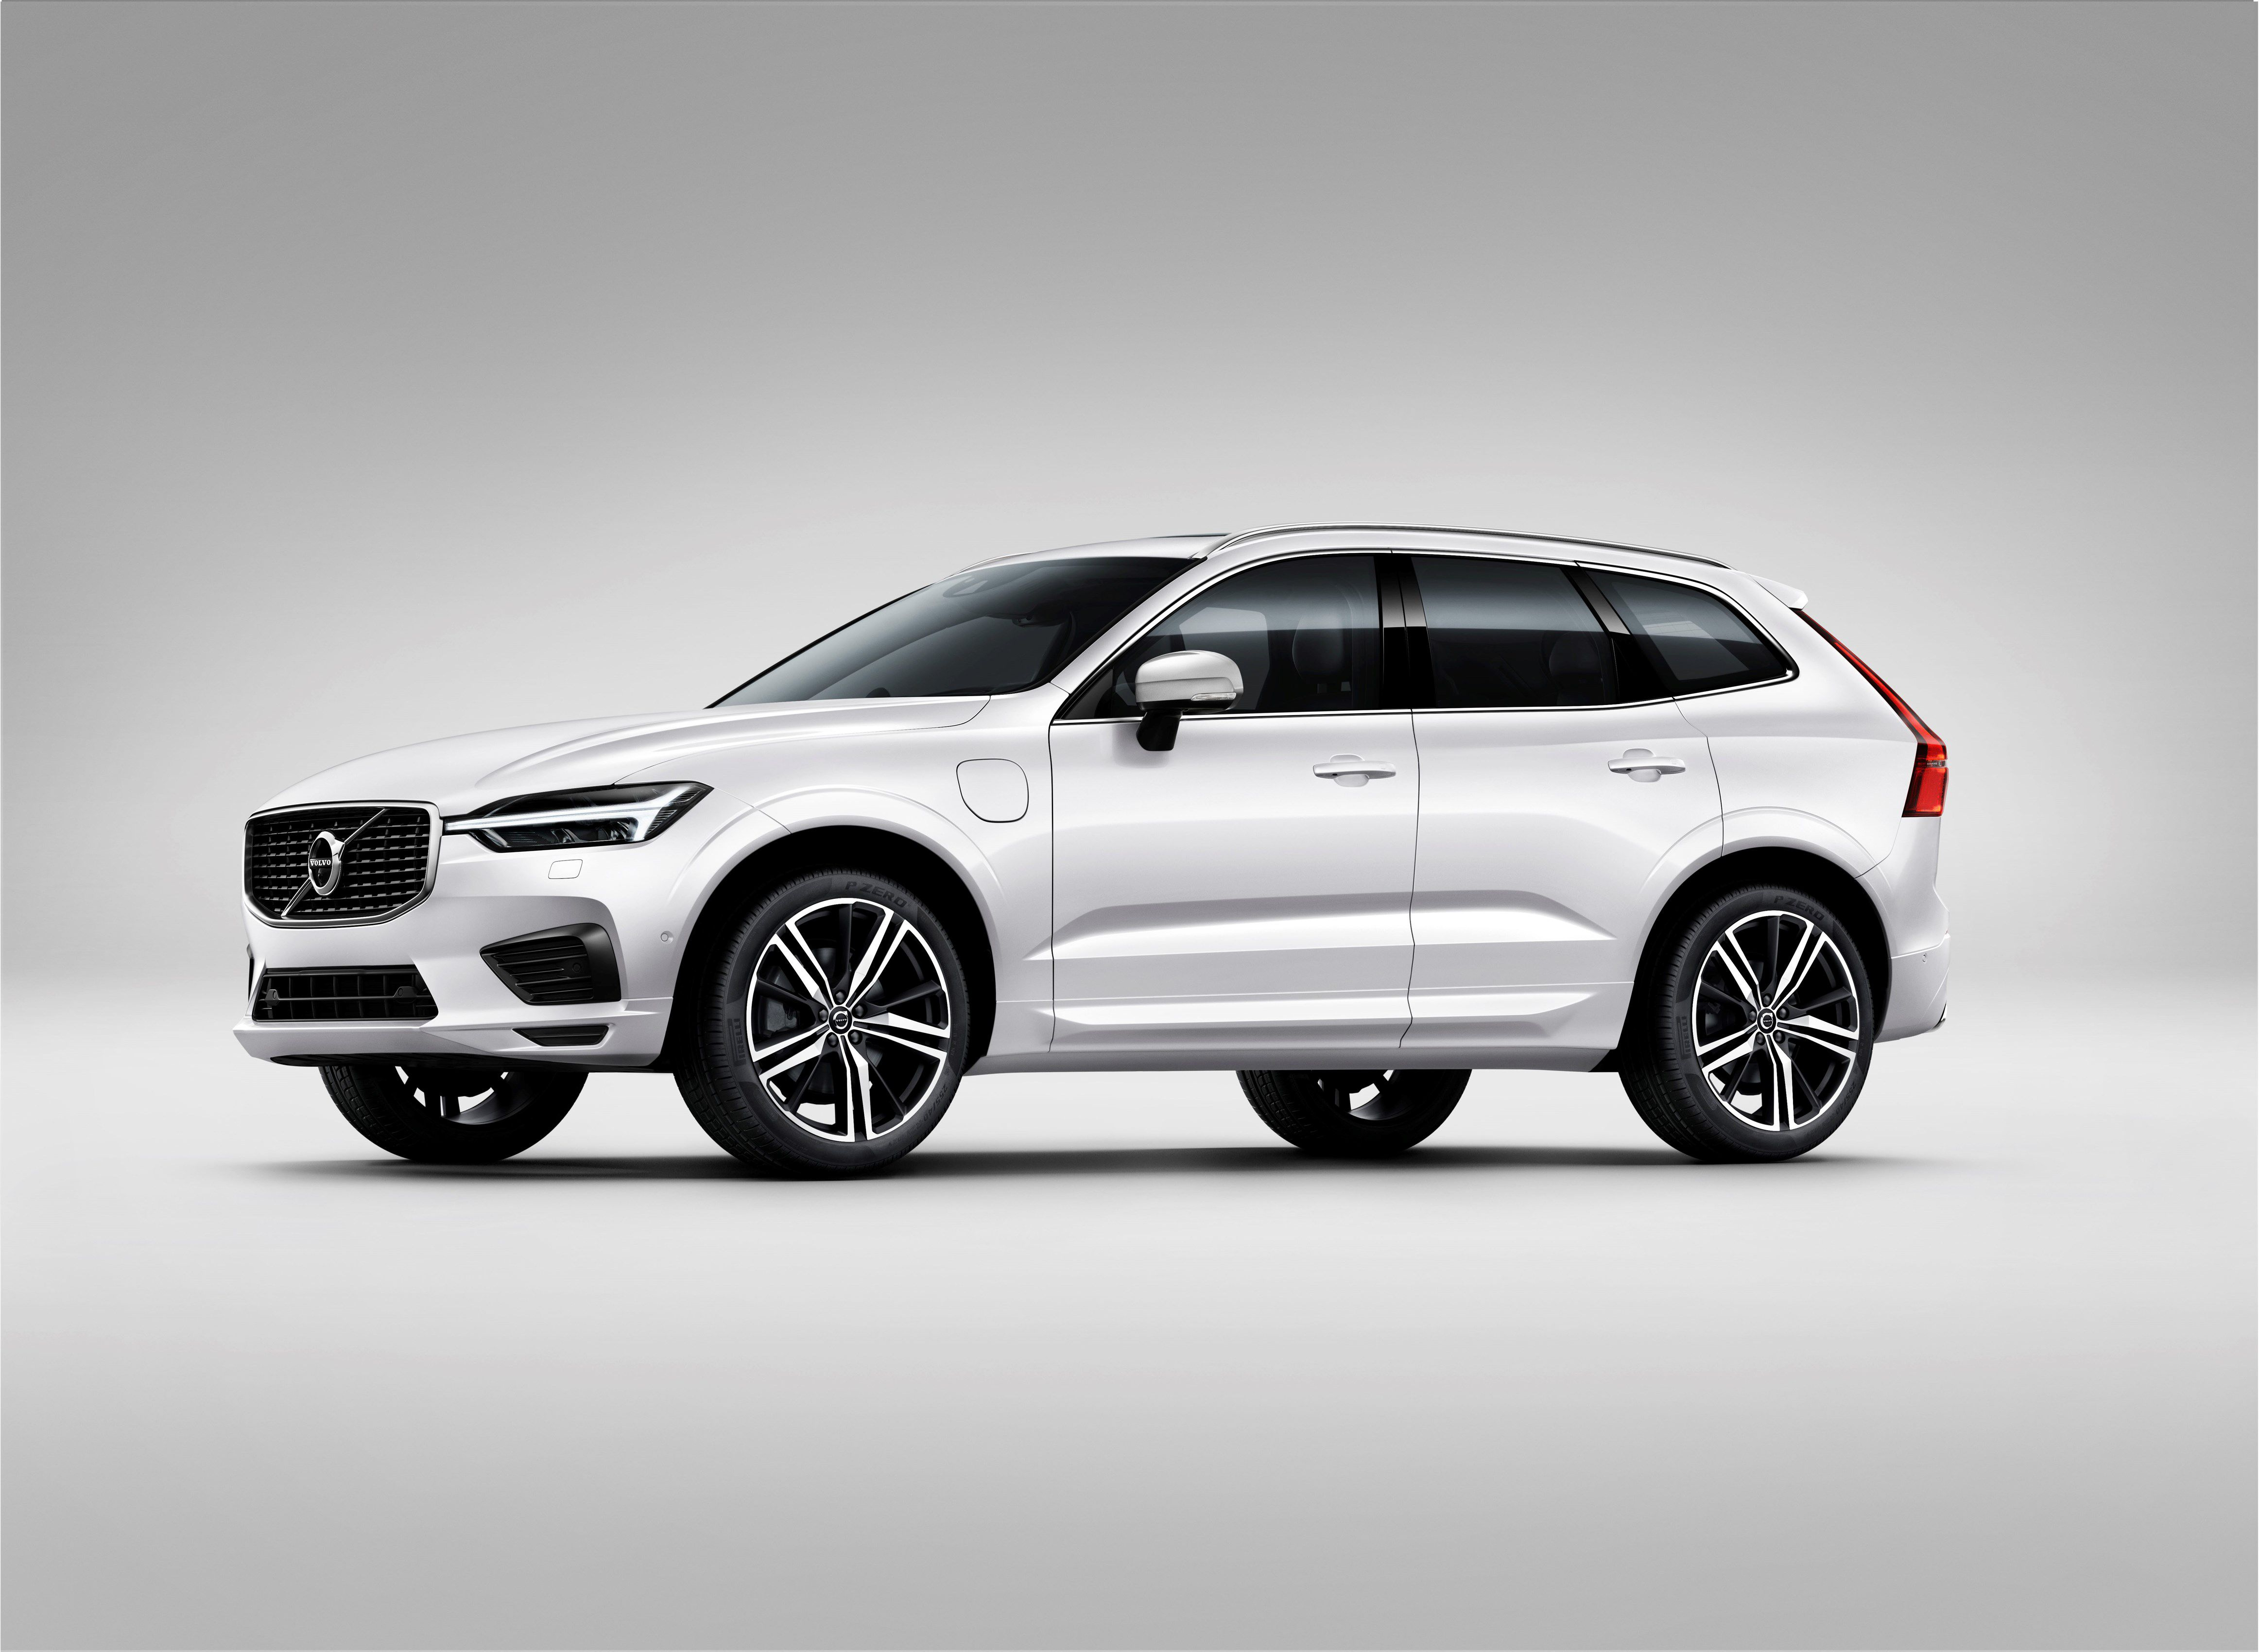 Volvo Xc60 The New Volvo Xc60 One Of The Safest Cars Ever Made Is Fully Loaded With New Technology Steer Assist Has Been Added To Th Volvo Volvo Xc90 Suv